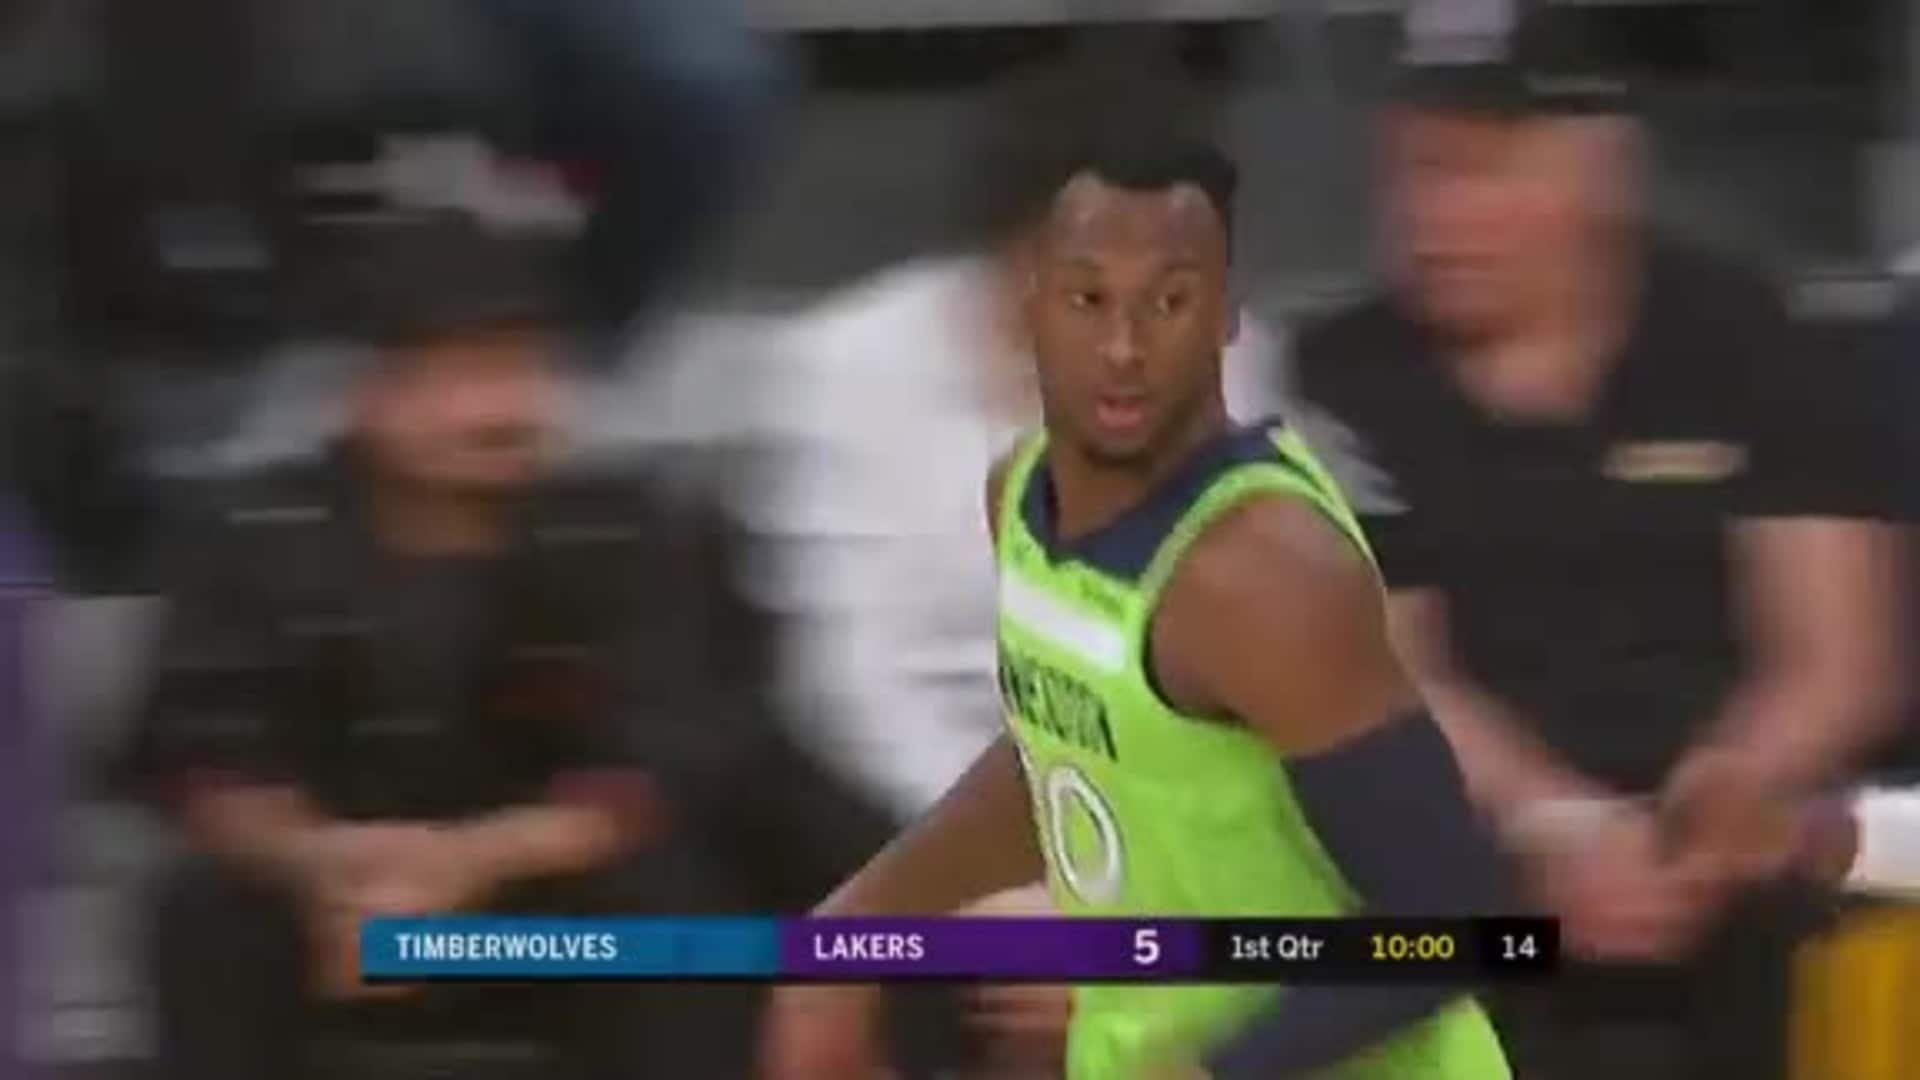 Highlights | Josh Okogie 18 points, 4 rebounds at Los Angeles (12.8.19)